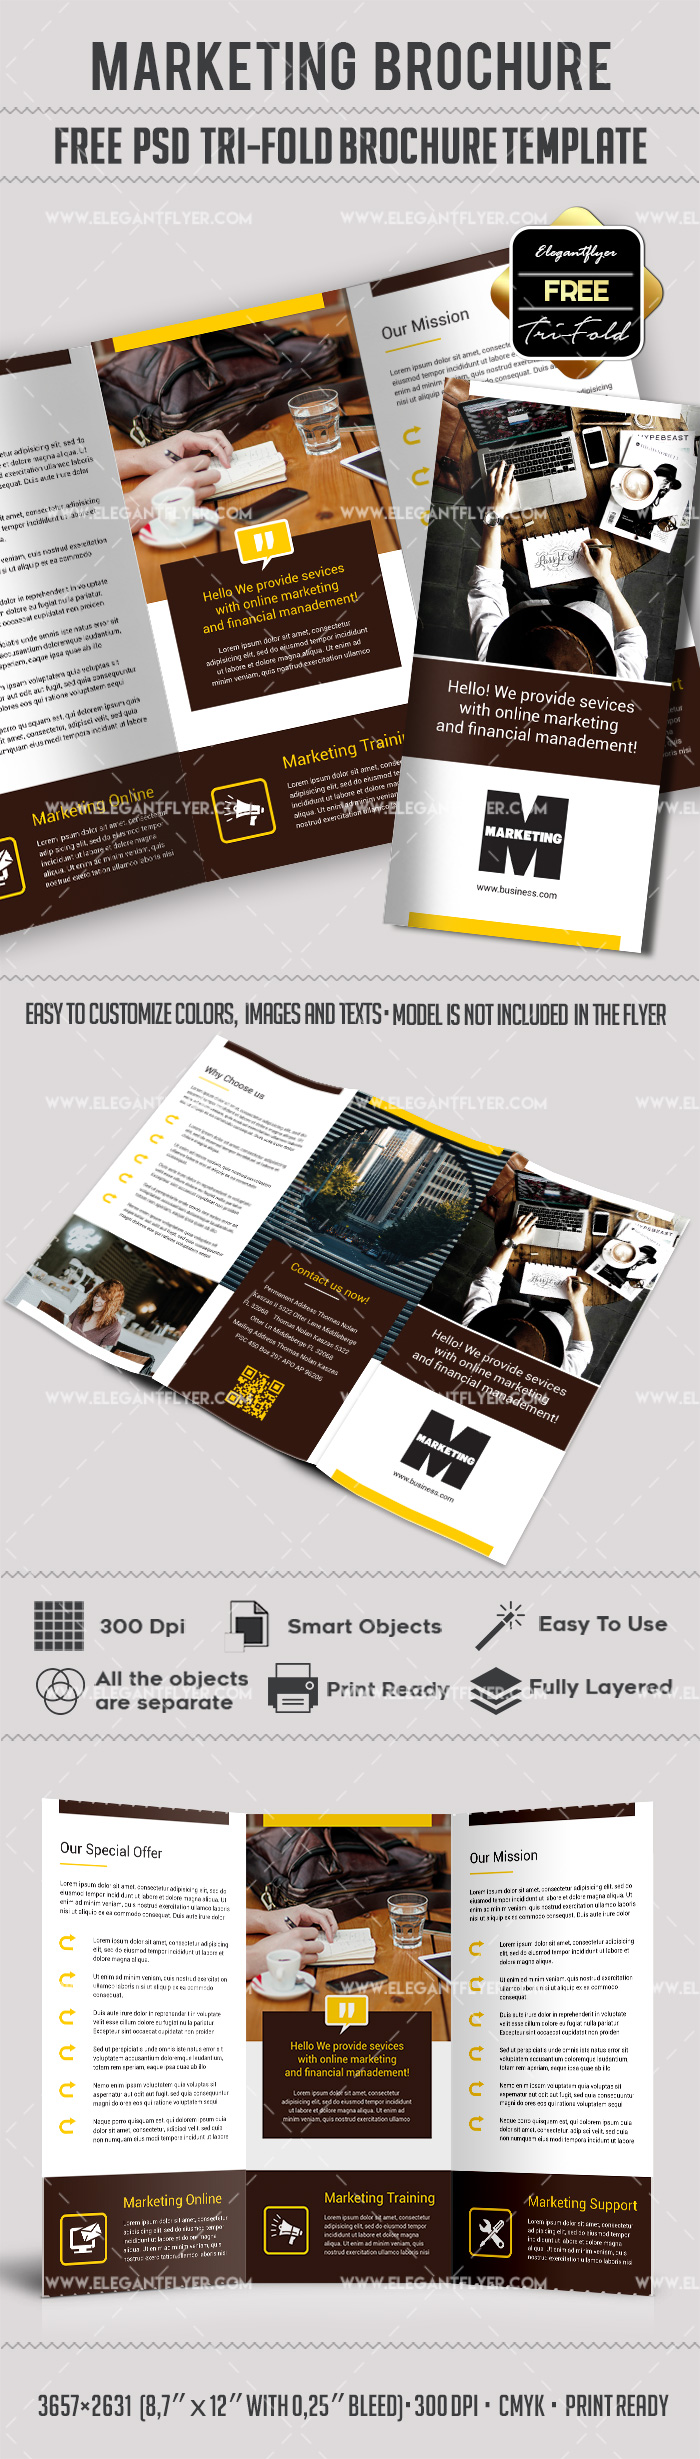 Marketing free tri fold psd brochure template by for Brochure templates tri fold